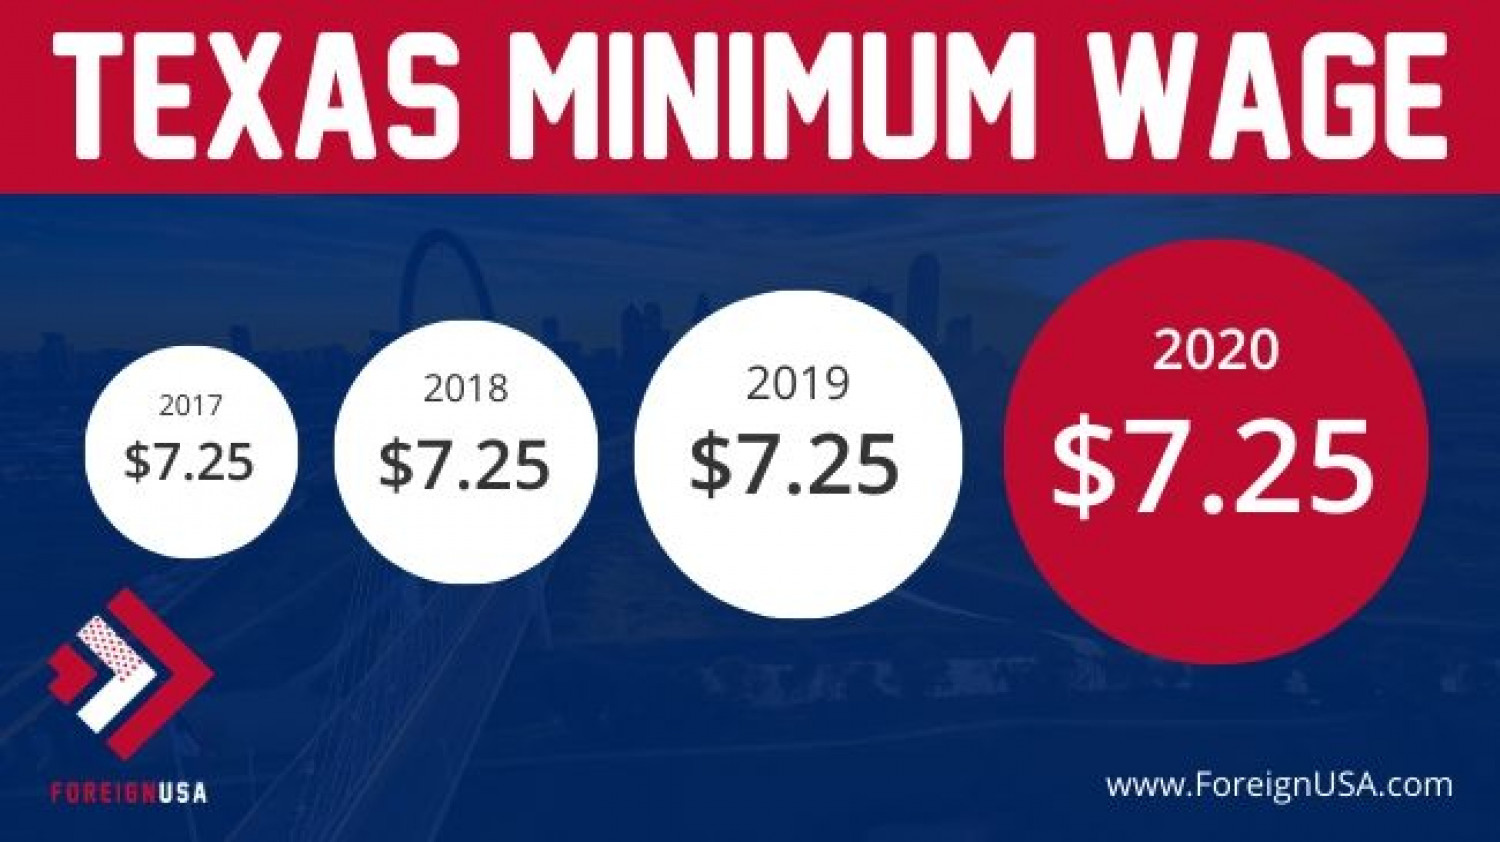 Texas Minimum Wage Infographic